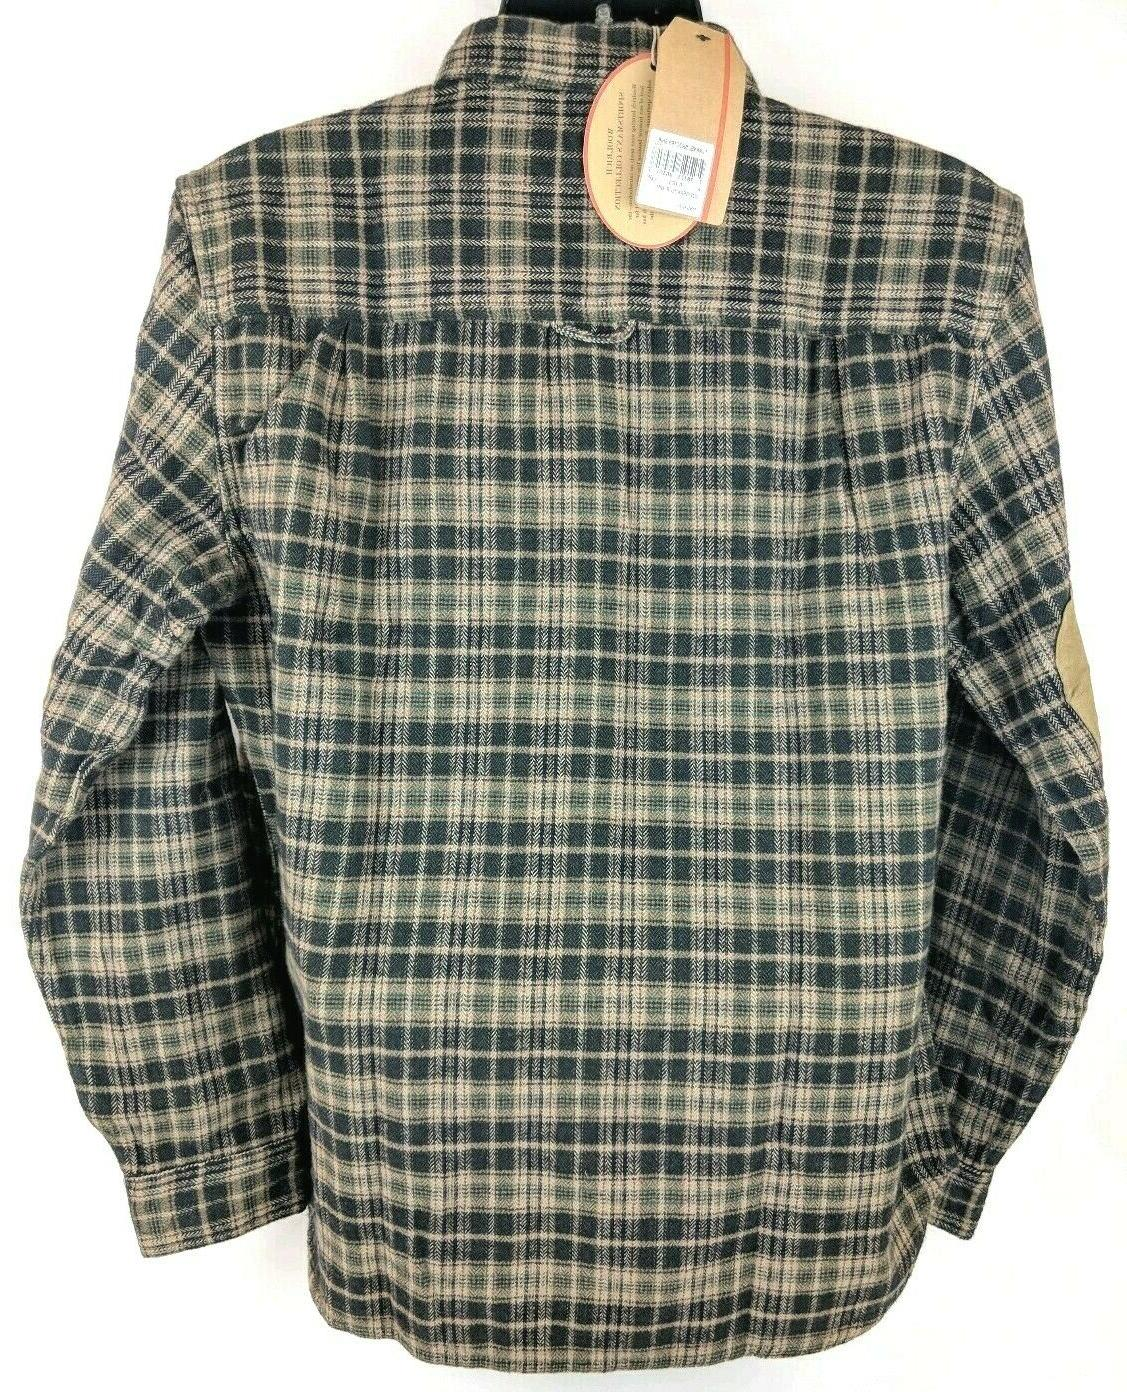 NEW Woolrich Plaid Flannel Padded Shooting Hunting Shirt Men M L